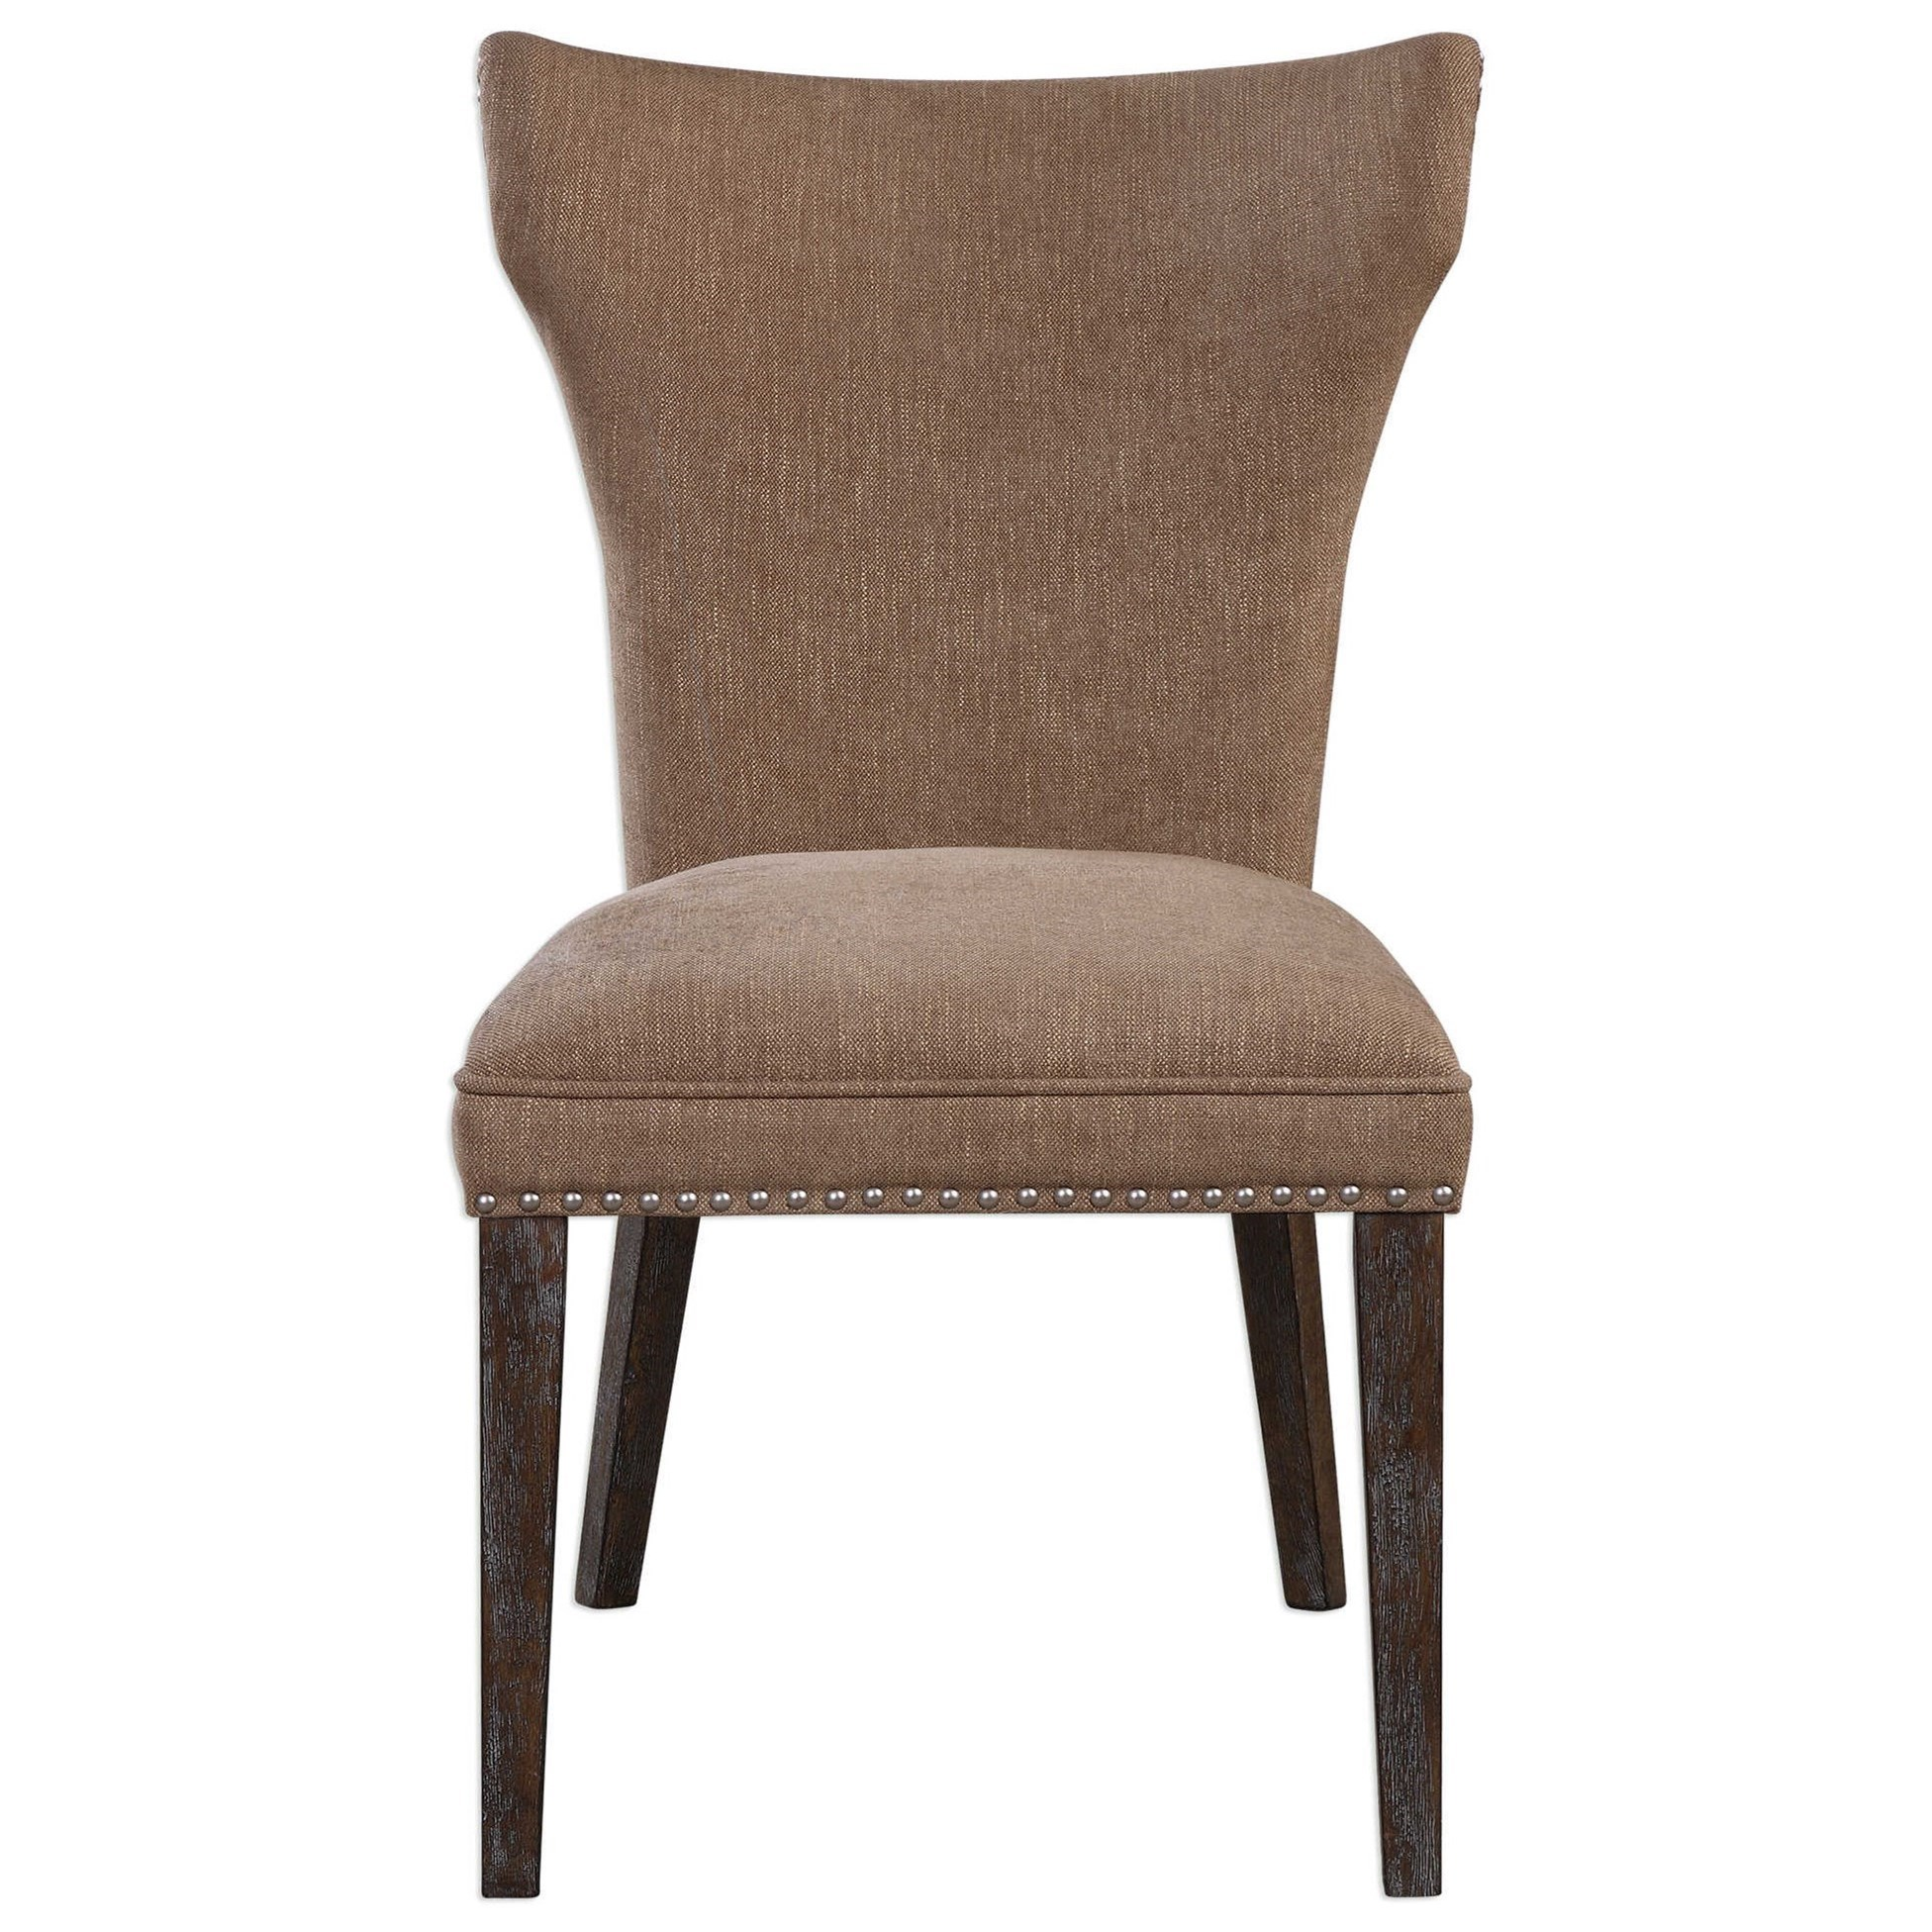 Uttermost Accent Furniture 23364 Aaronus Armless Chair Dunk Bright Furniture Upholstered